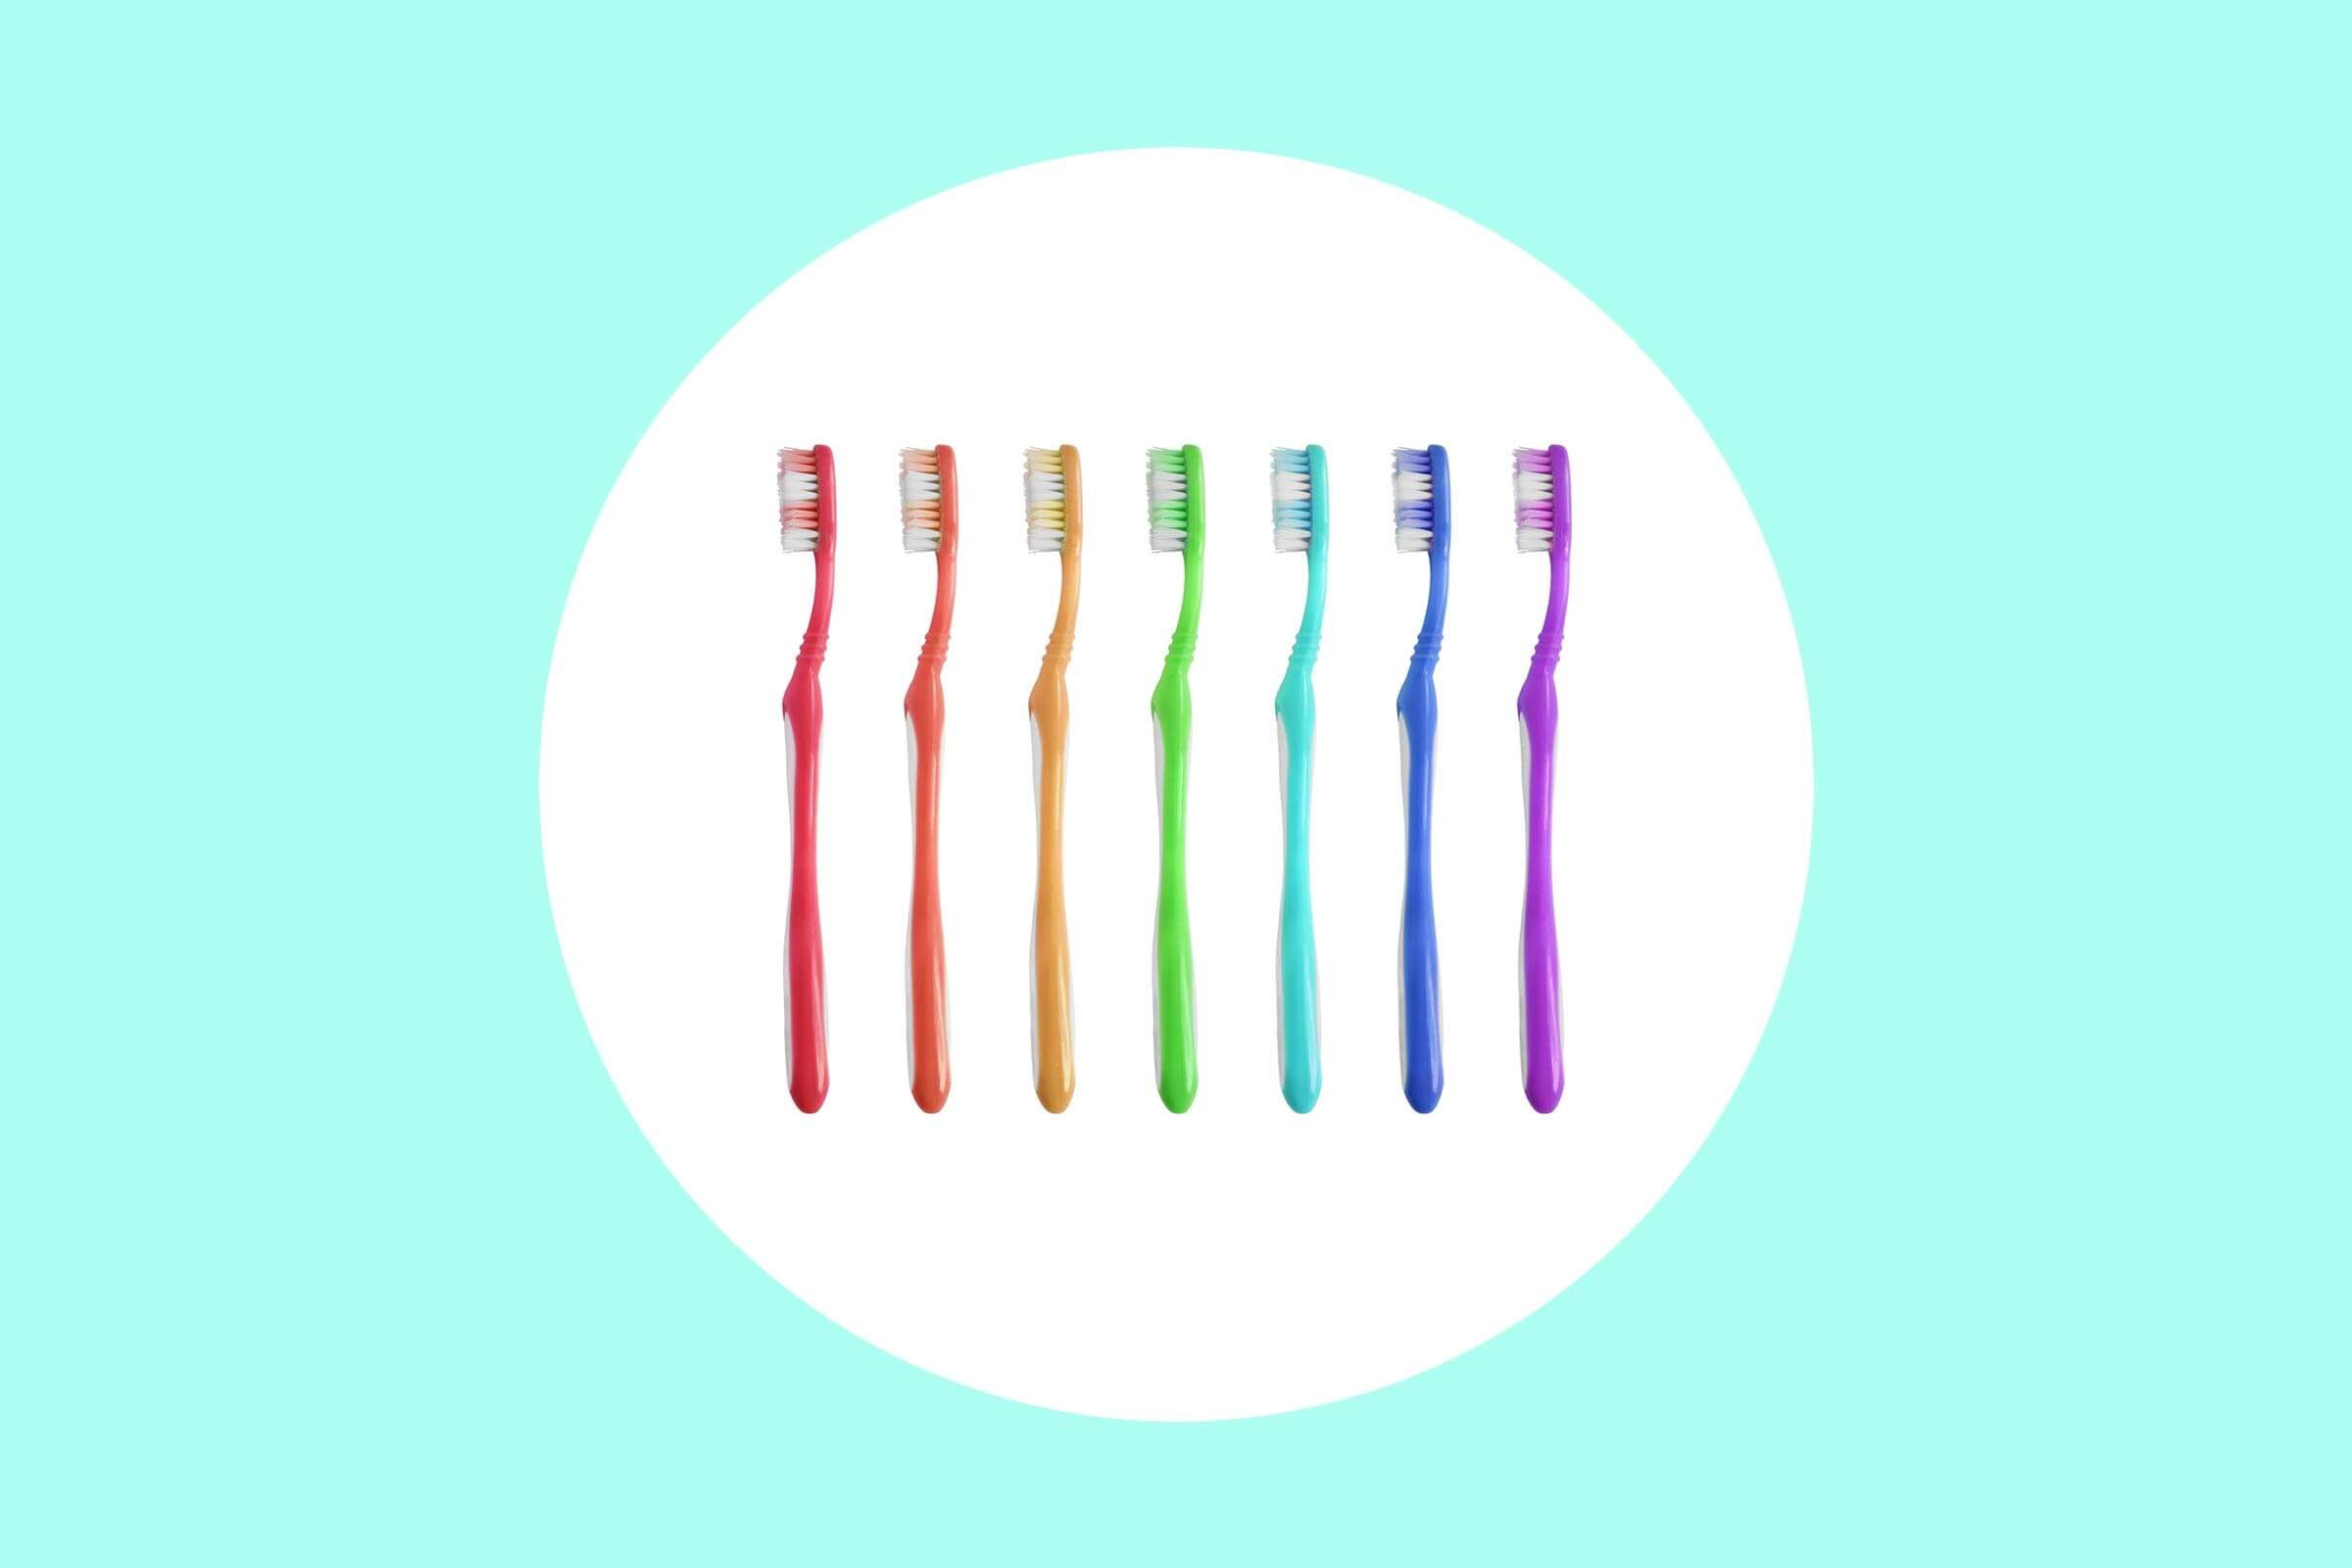 A rainbow of kids' toothbrushes.